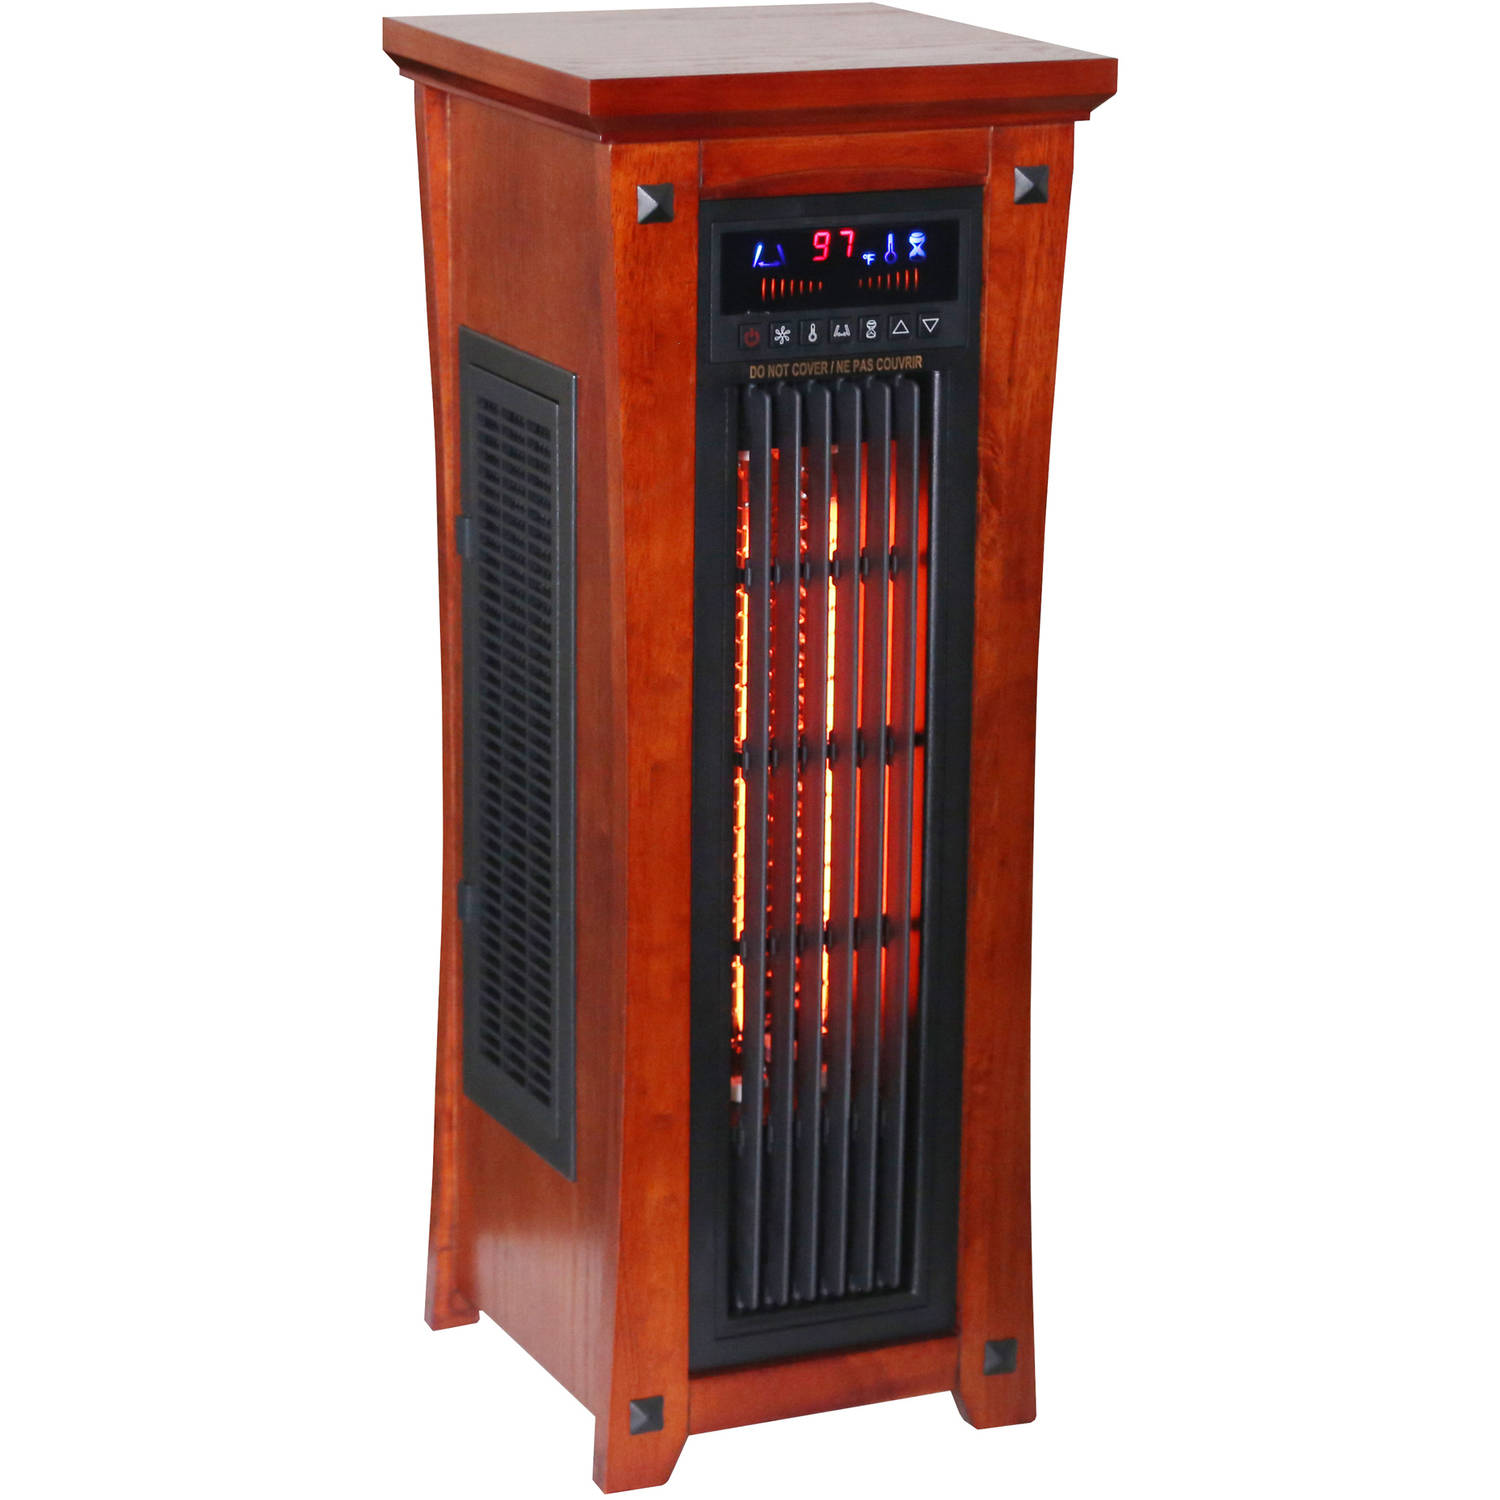 Heat Wave Infrared Quartz Tower Heater